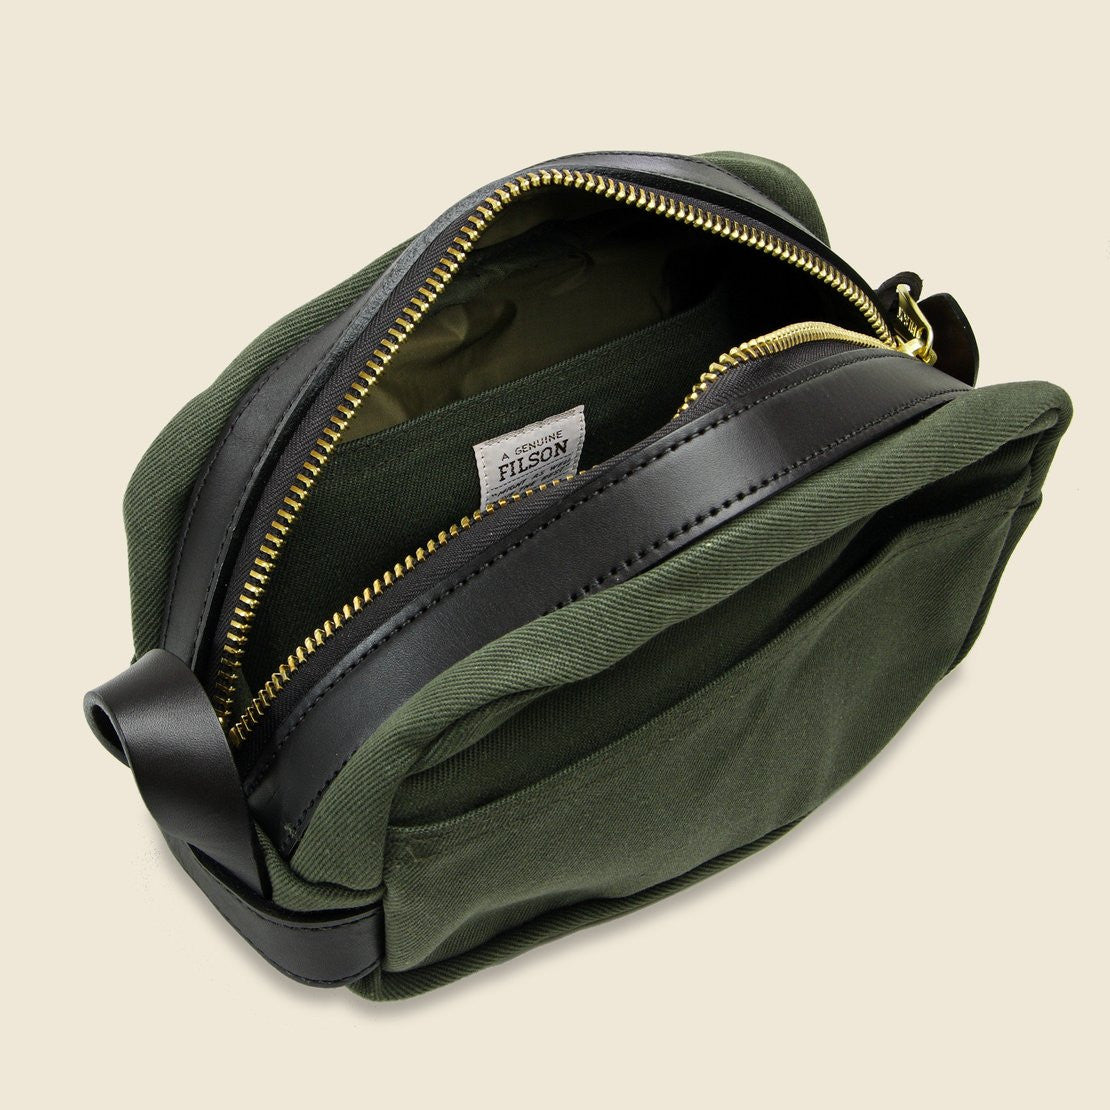 Travel Kit - Otter Green - Filson - STAG Provisions - Accessories - Bags / Luggage